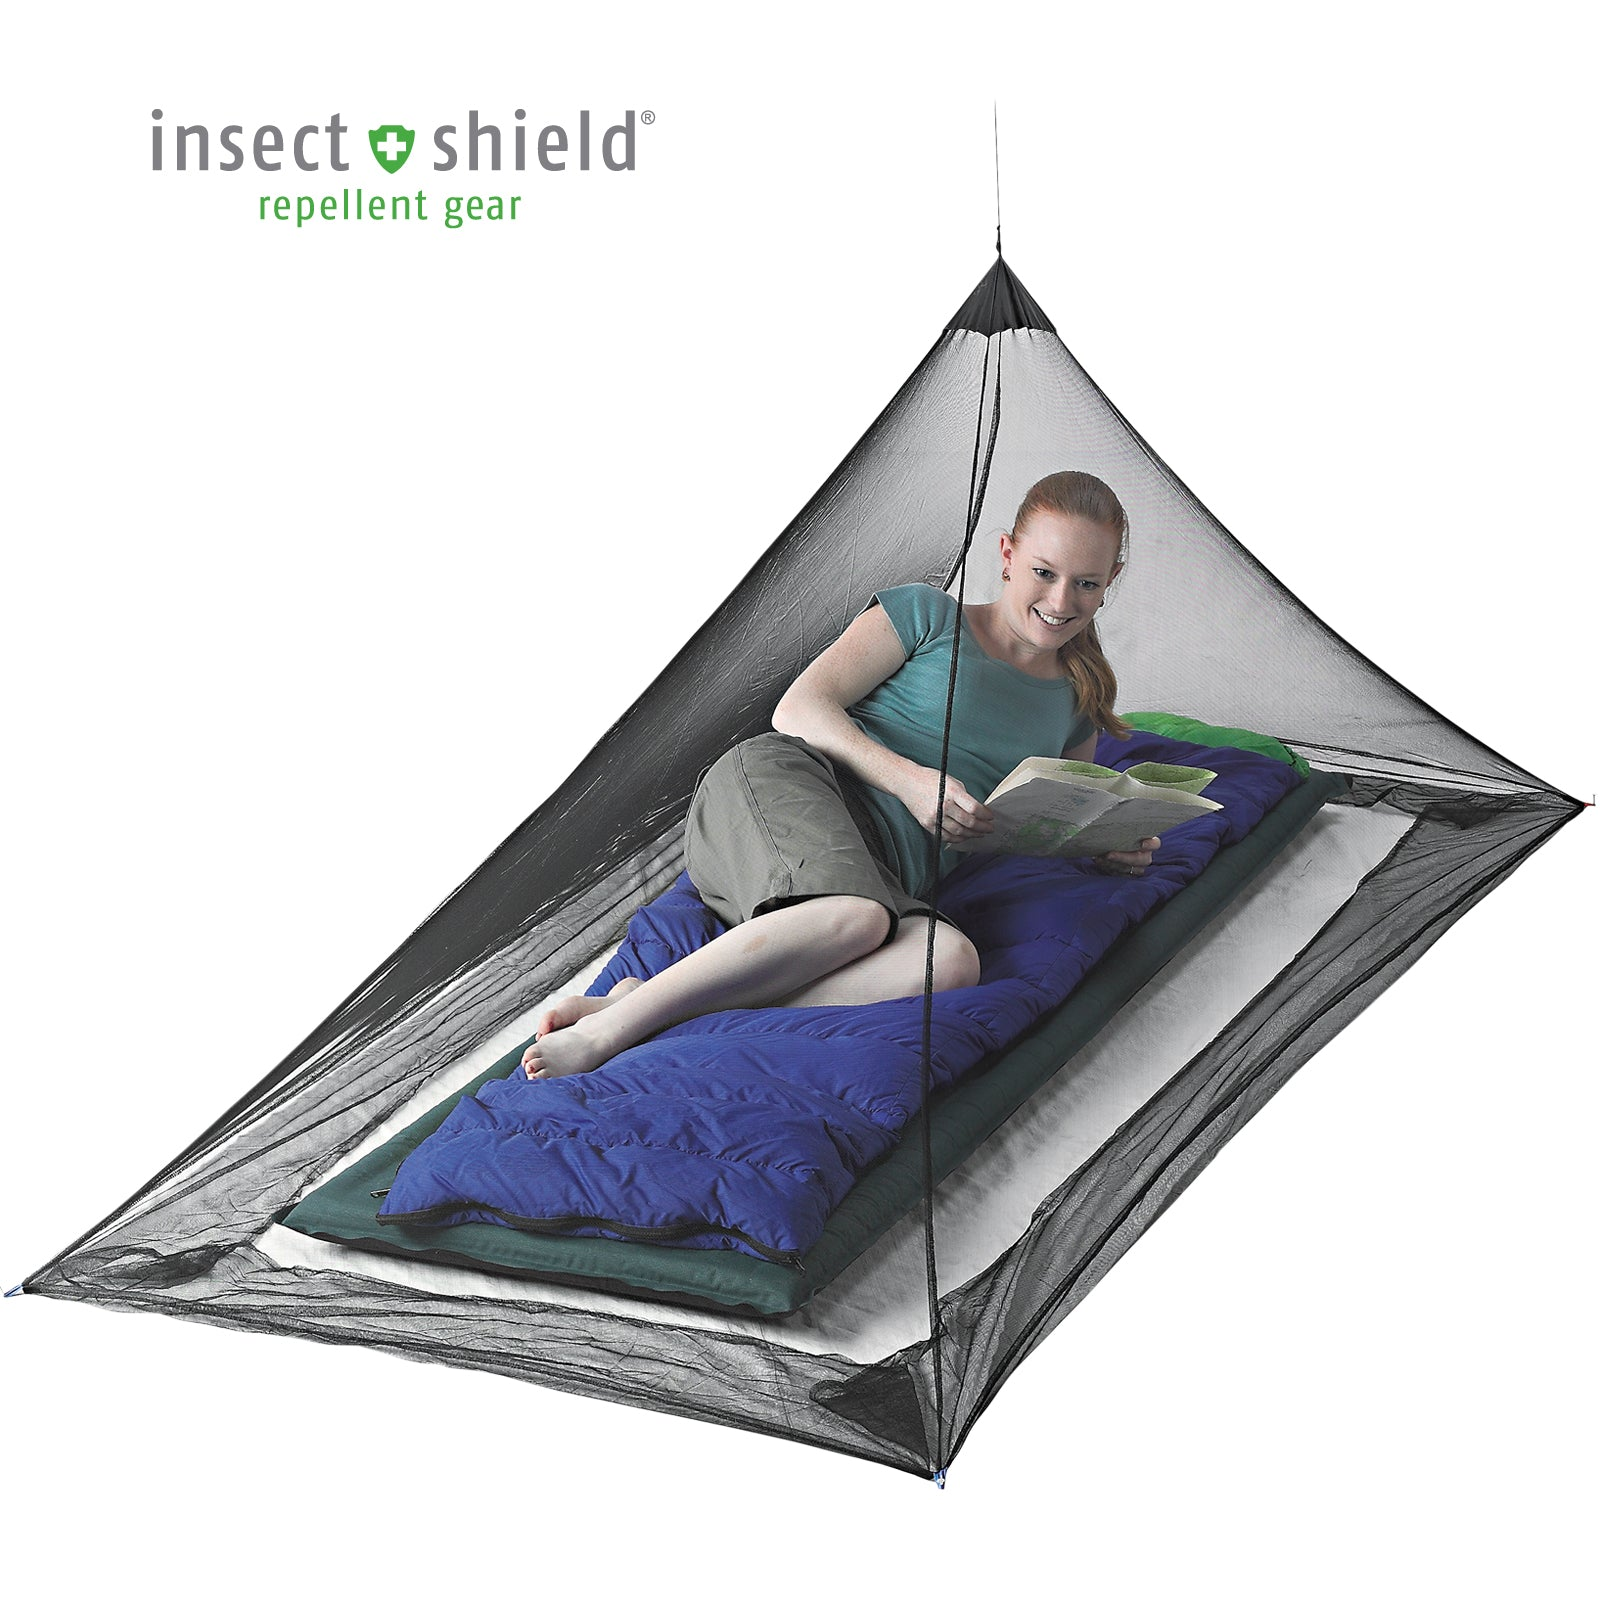 Mosquito Pyramid Net Shelter _ portable mosquito net _ insect shield